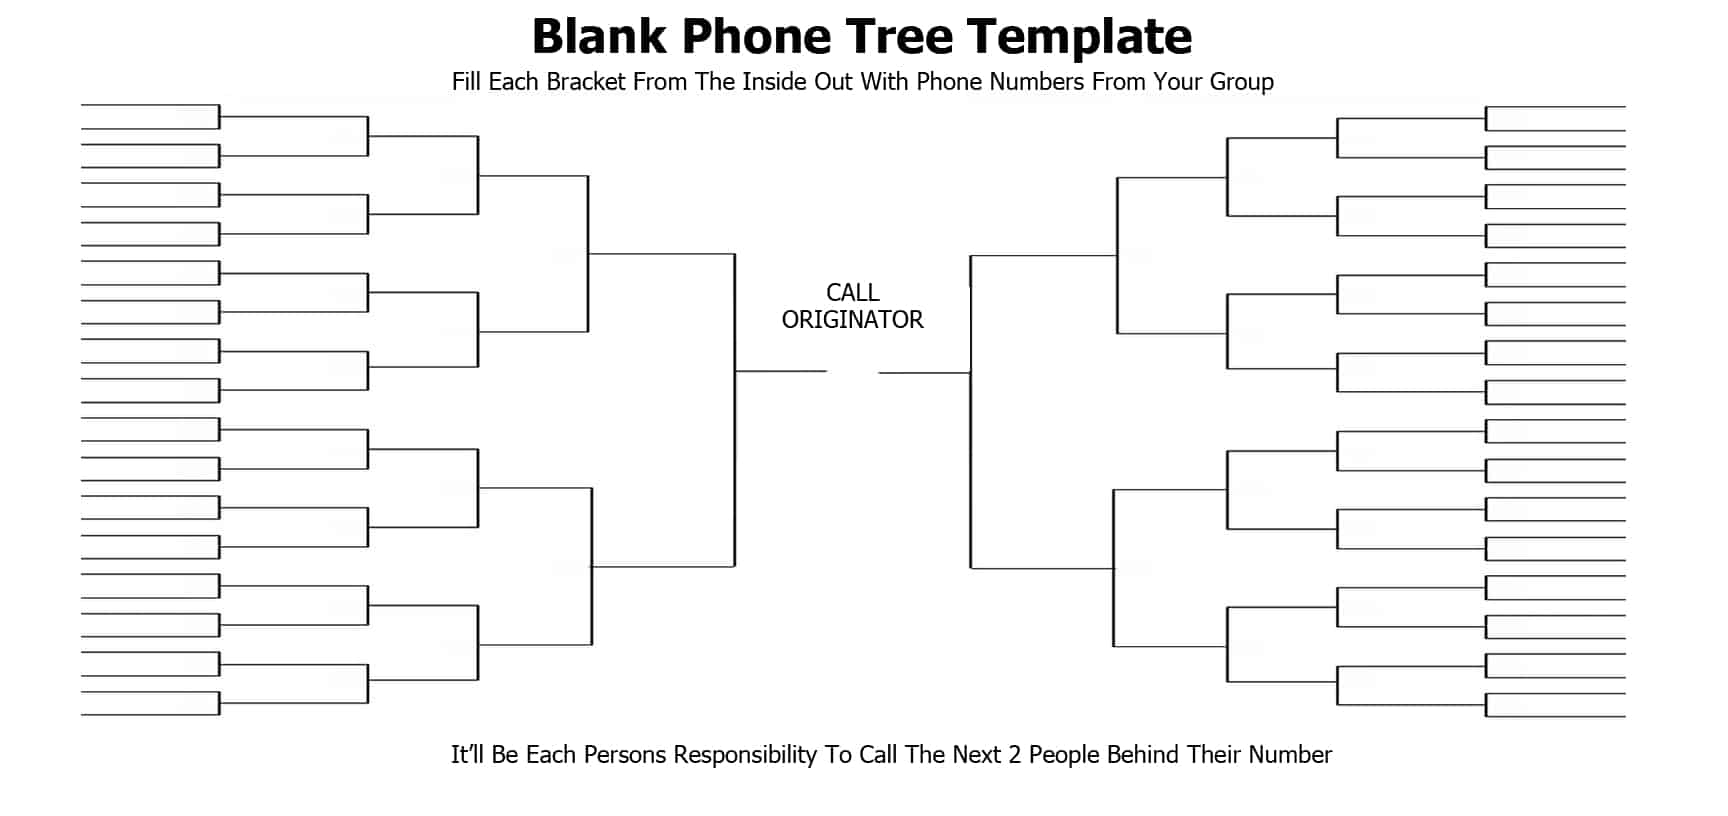 bcp call tree template - 5 free phone tree templates word excel pdf formats